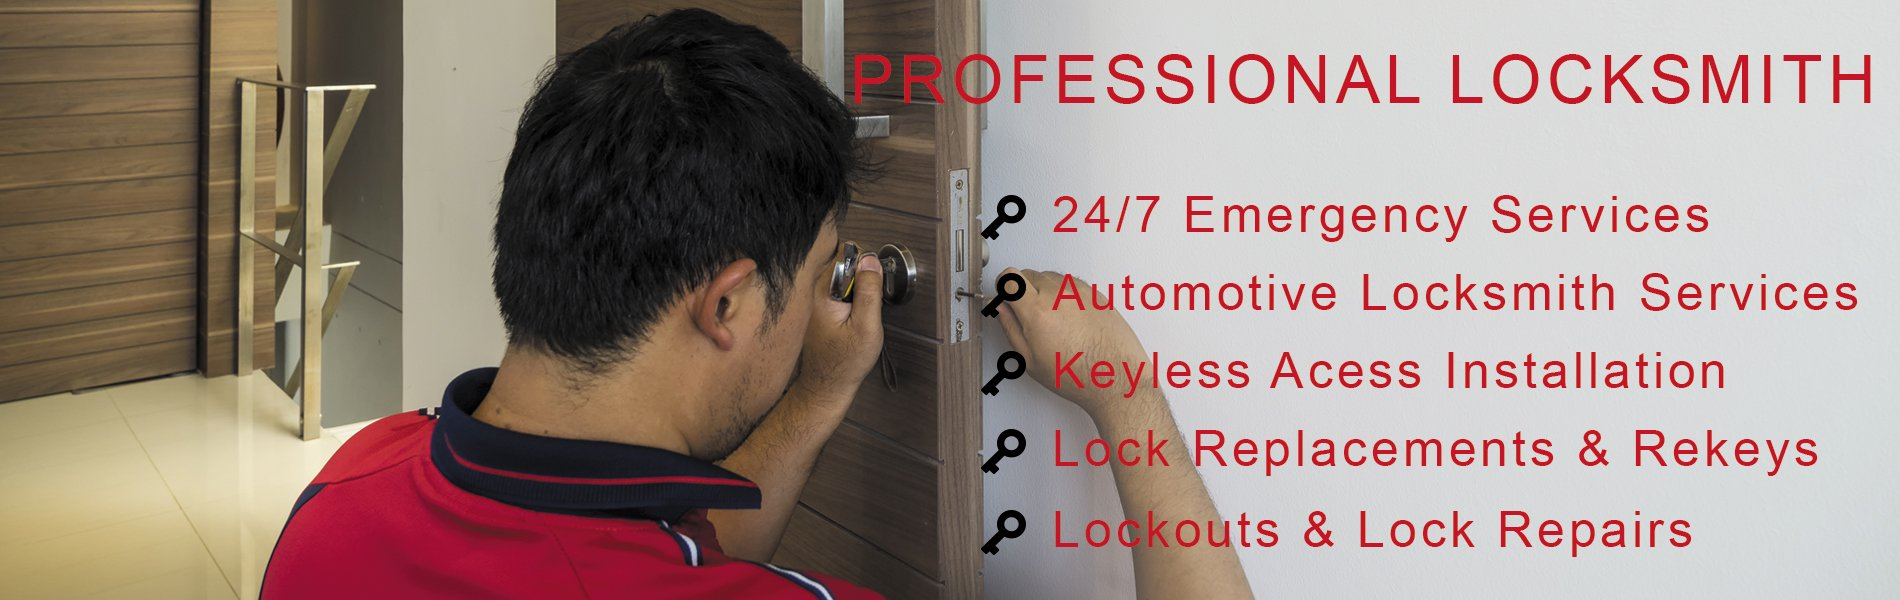 Orlando General Locksmith Orlando, FL 407-548-2081